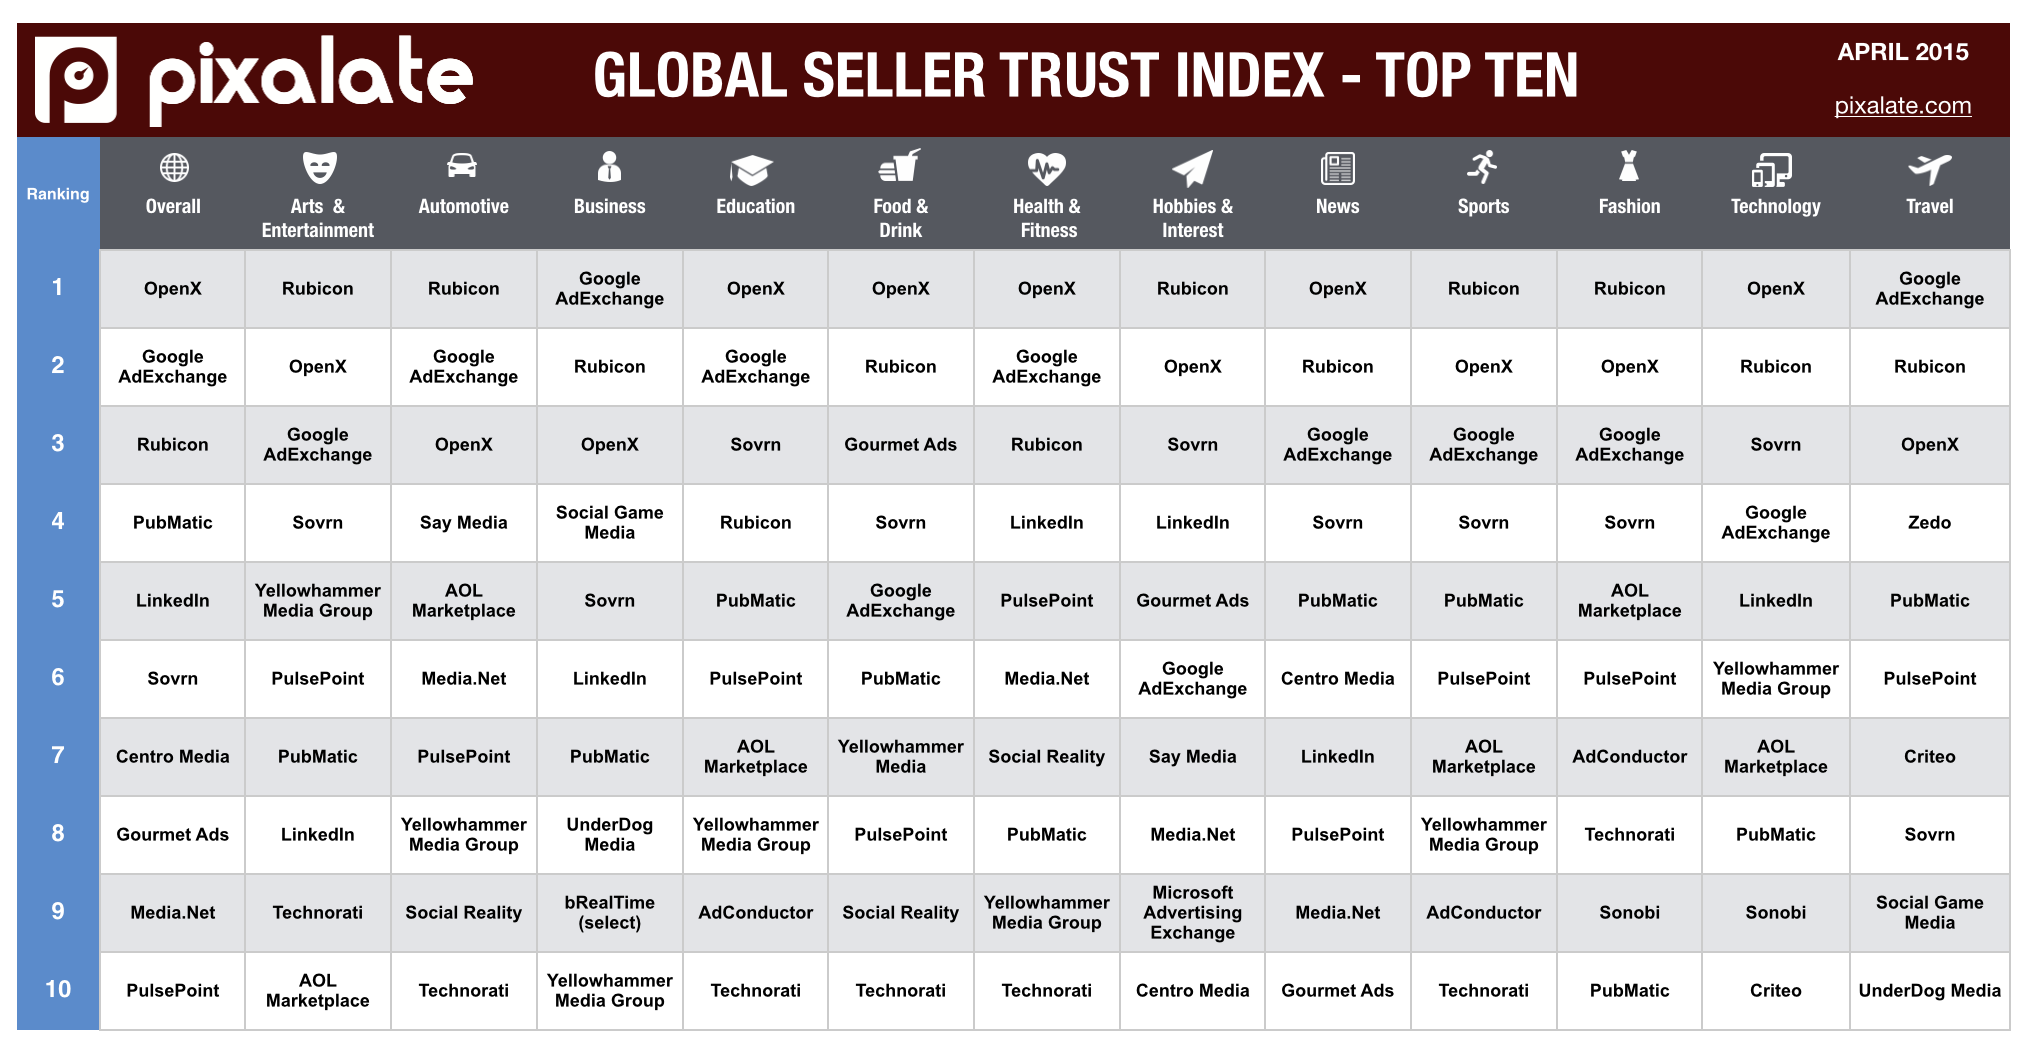 Attacking Ad Fraud Leads Technorati To Top Marks In Pixalate's Global Seller Trust Index